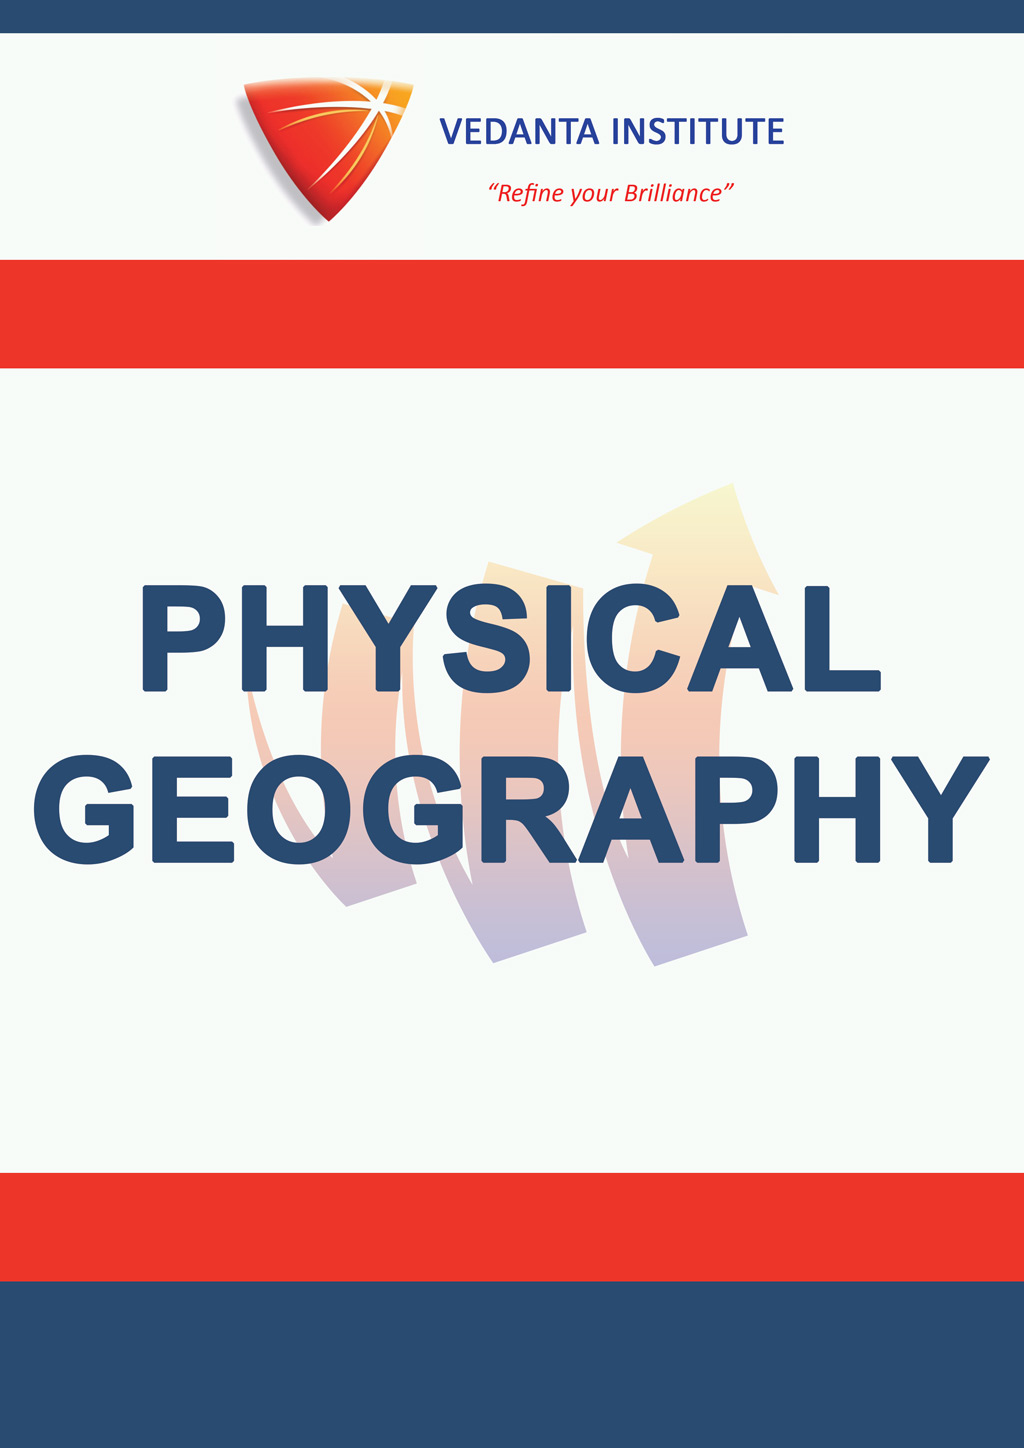 physical-geography-book-for-exam-vedanta-institute